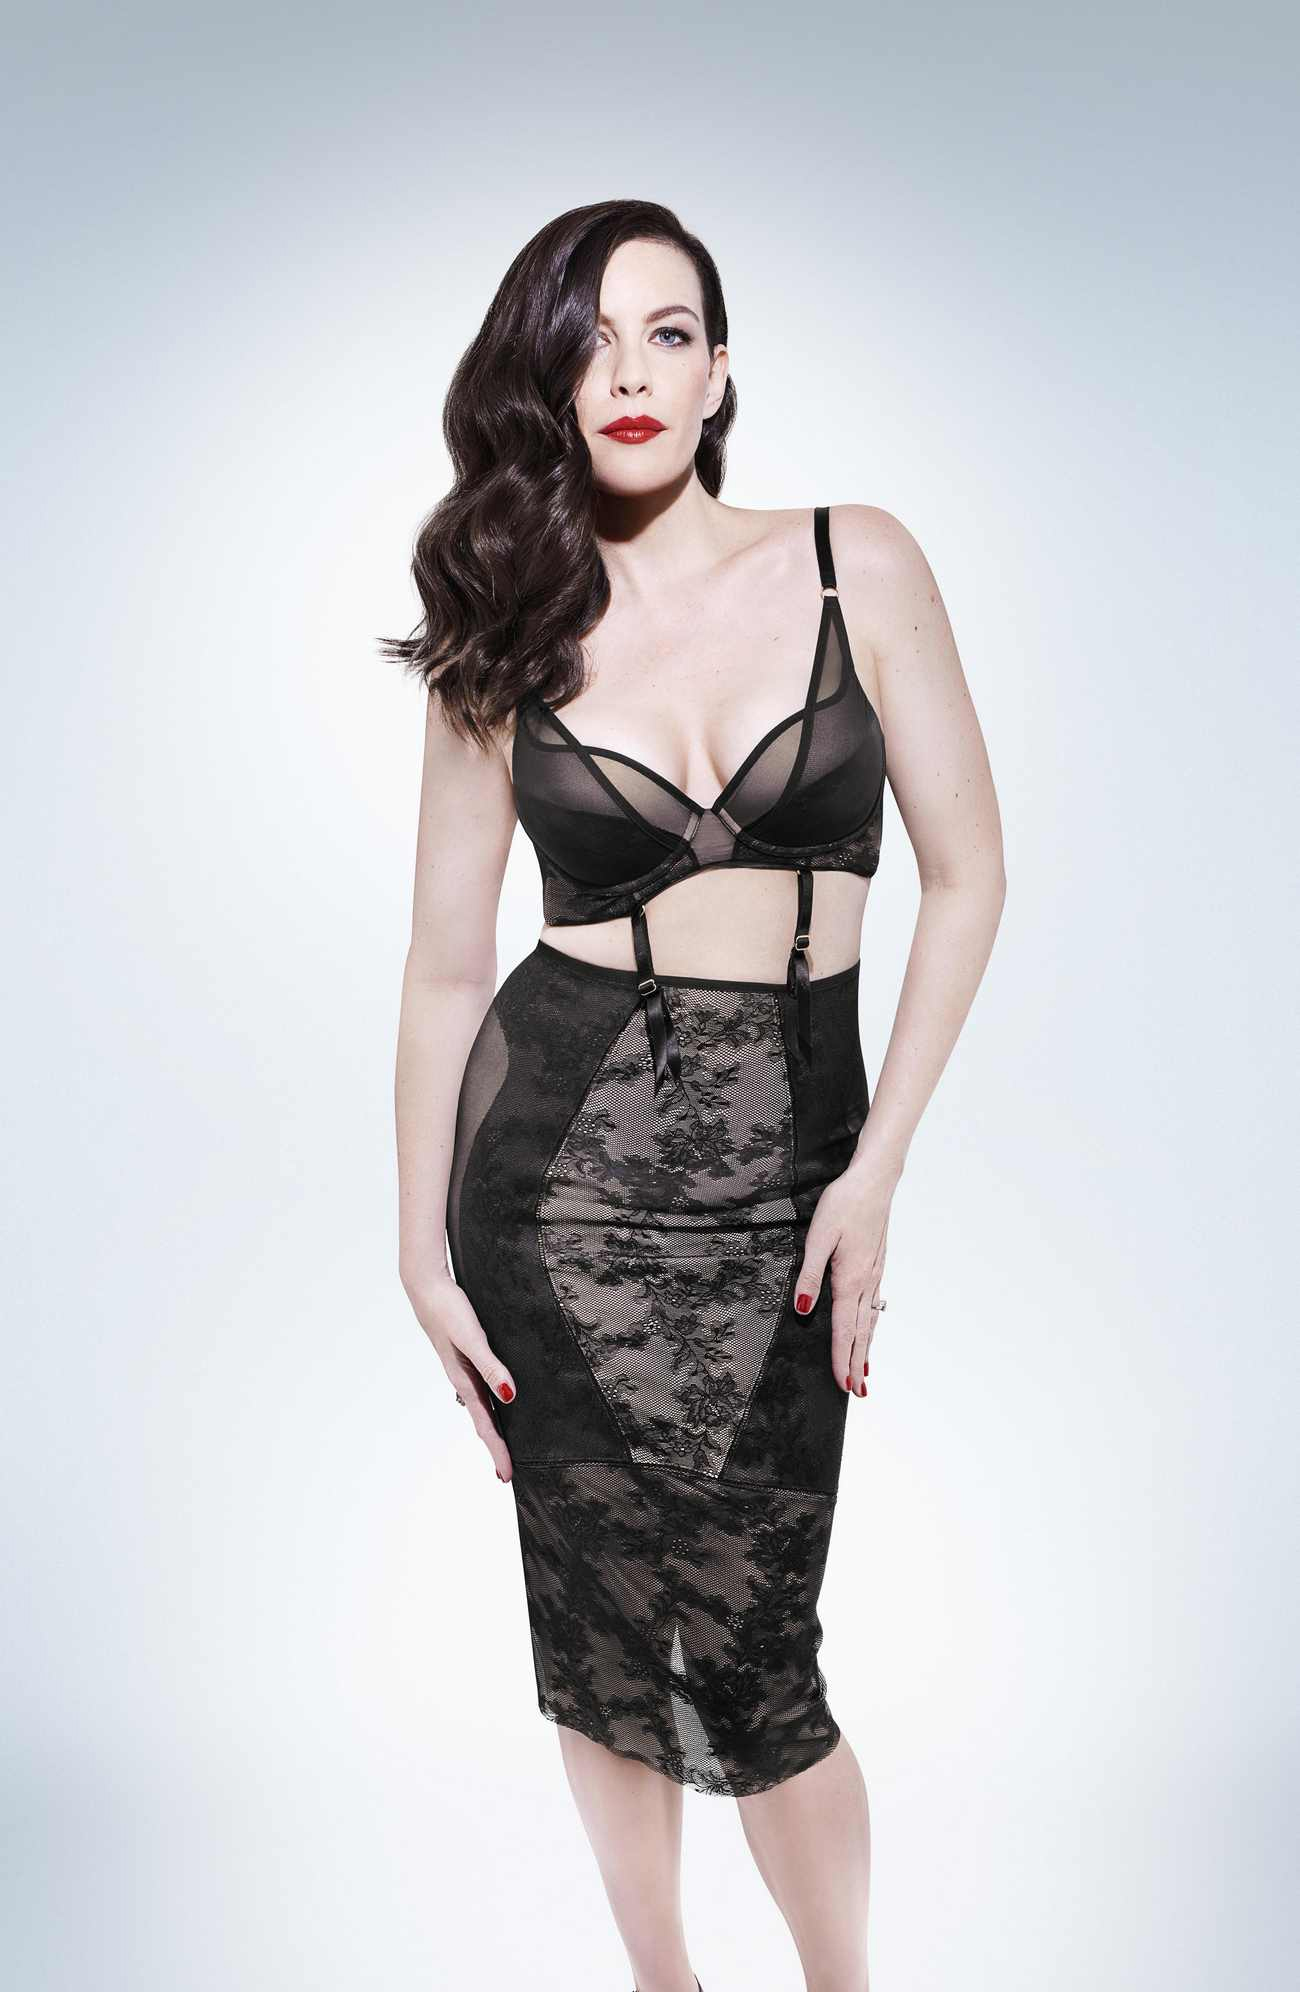 Liv Tyler - Triumph Lingerie Photoshoot - Spring/Summer 2018